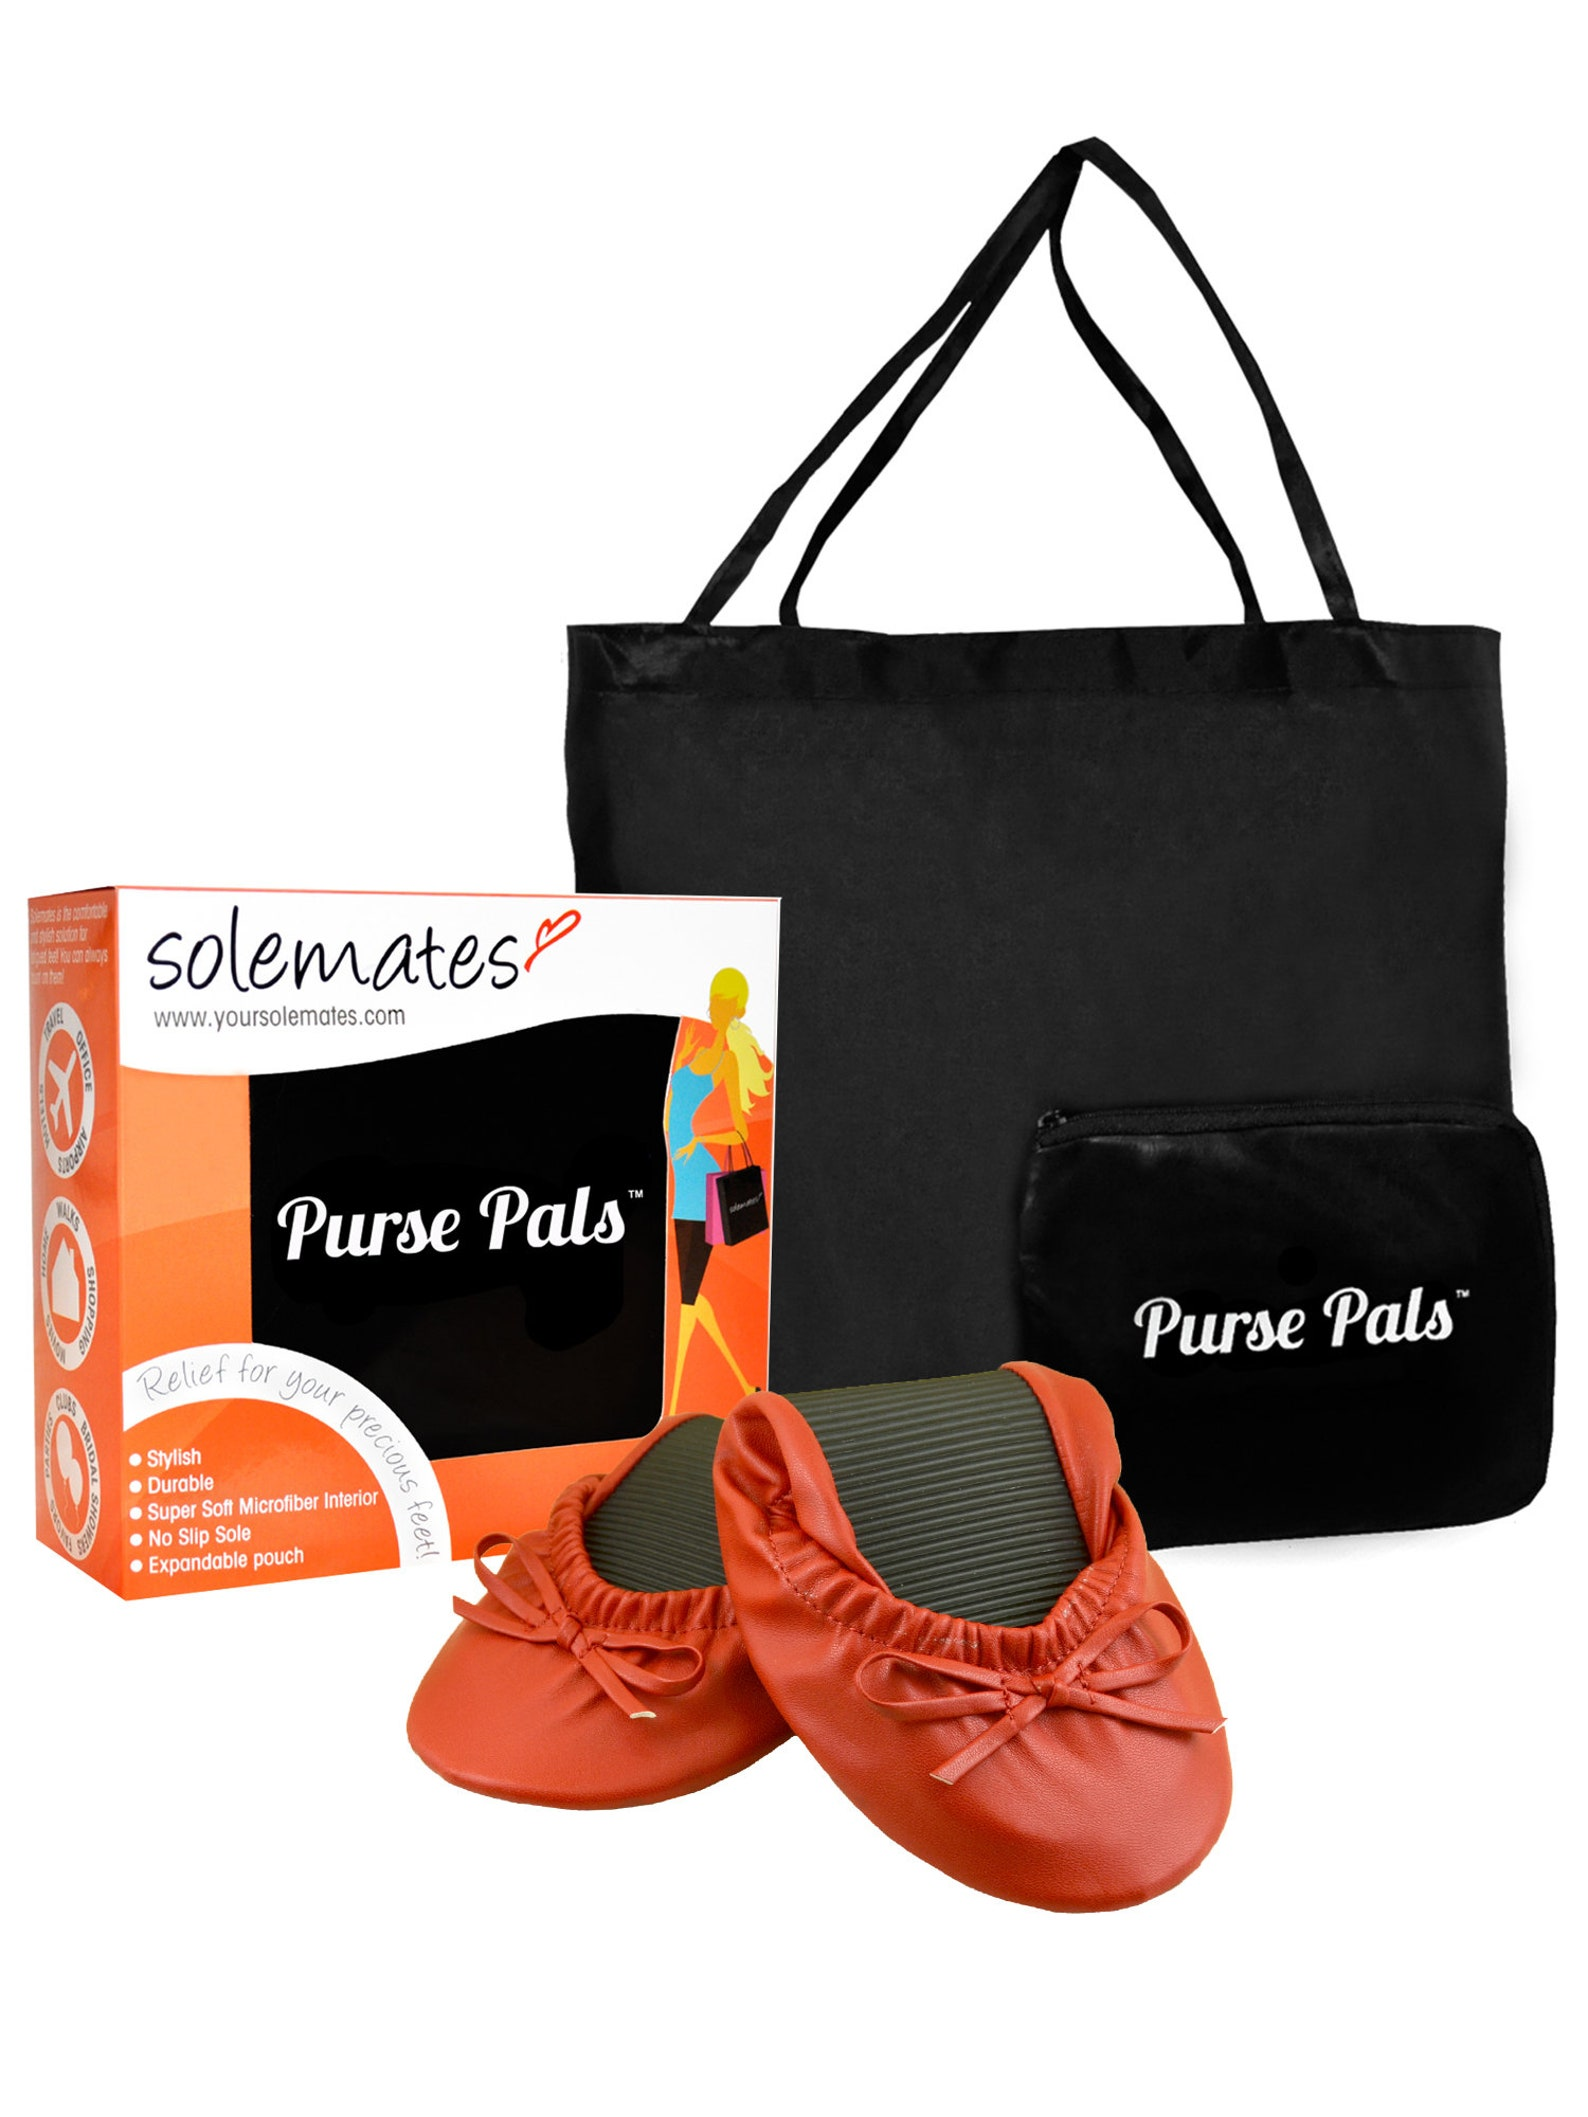 solemates purse pals foldable travel ballet flats for women with compact carry bag and soft microfiber interior for maximum comf